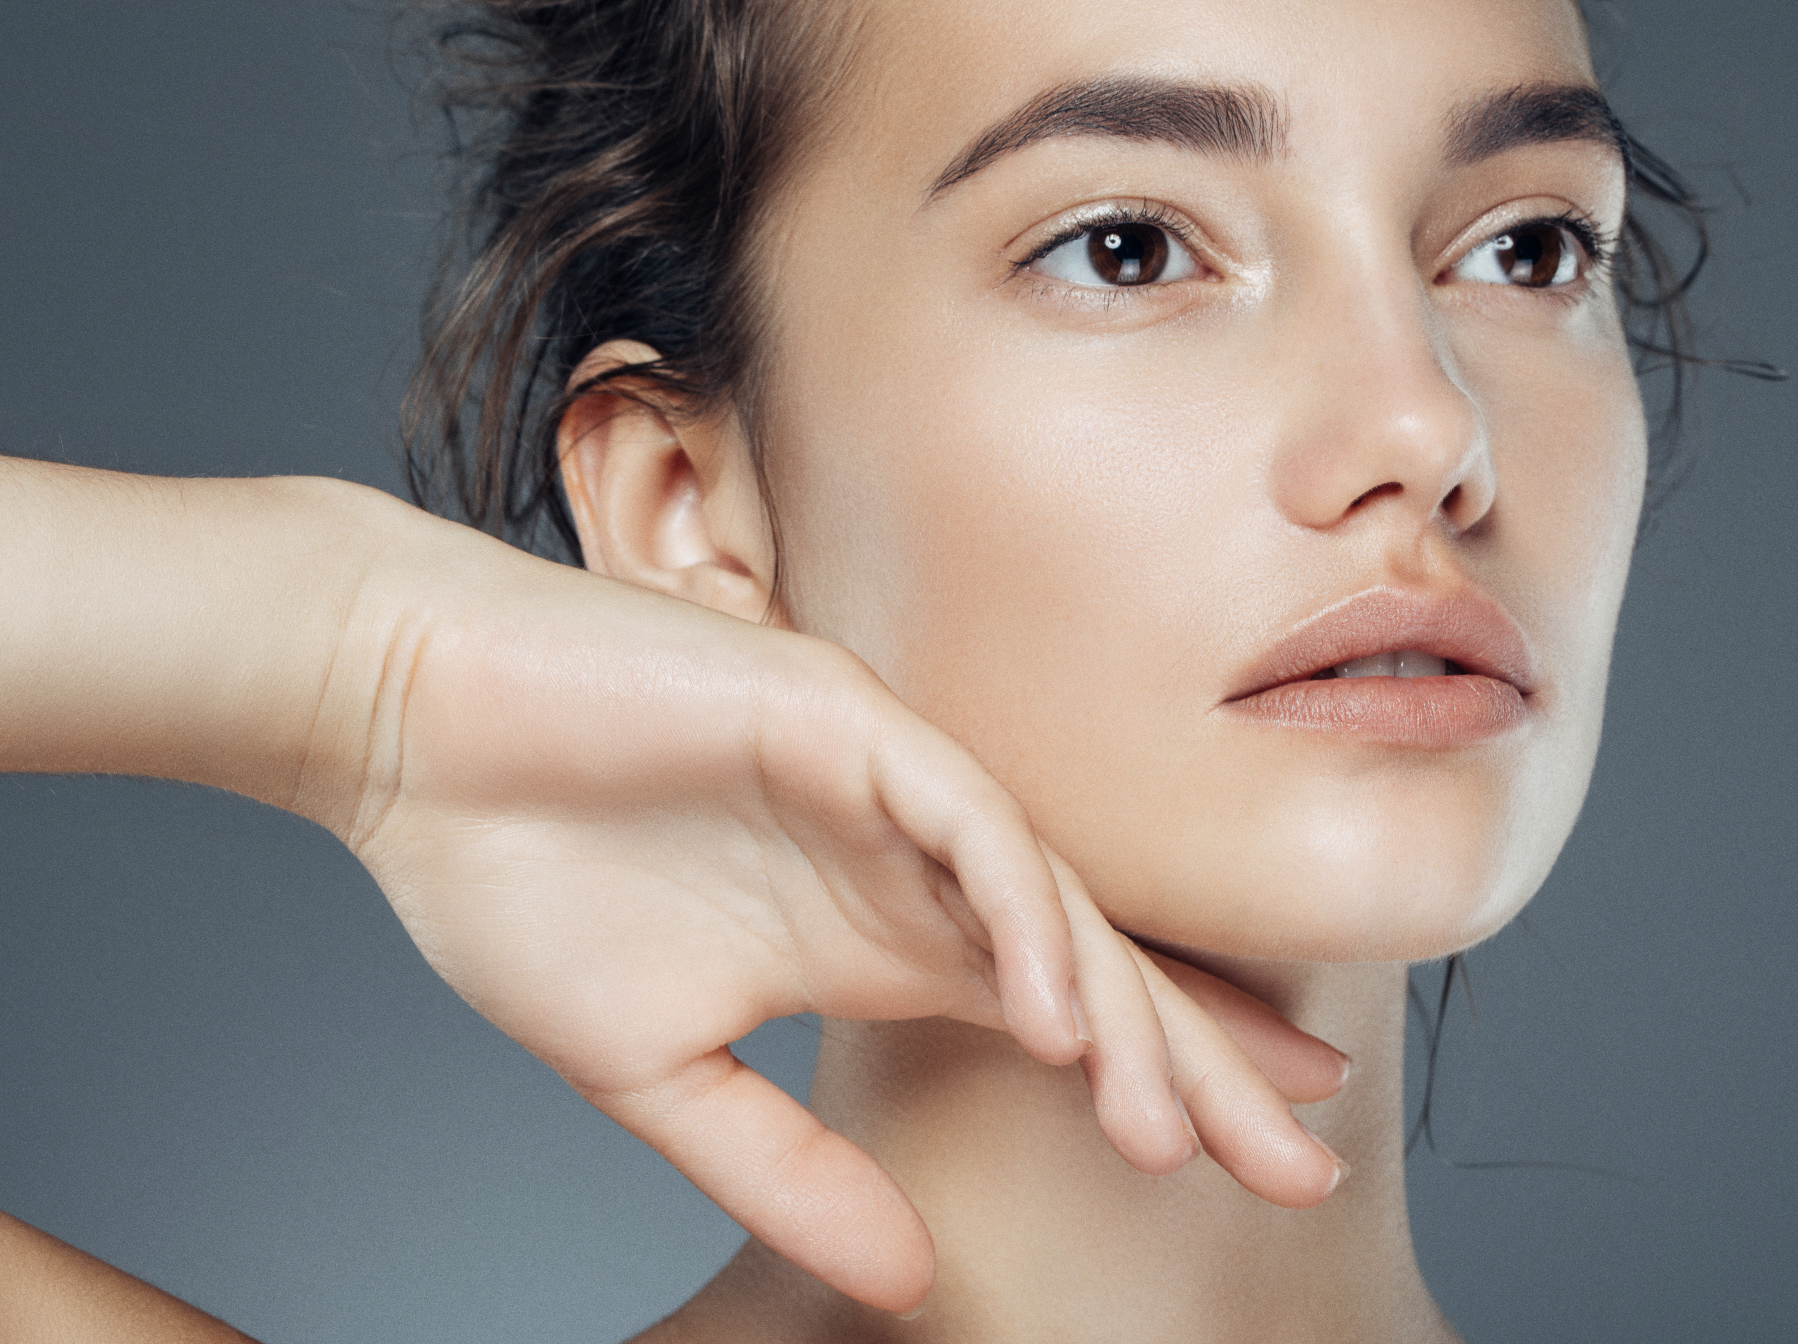 What Are Sebaceous Filaments? - Difference of Sebaceous Filaments vs